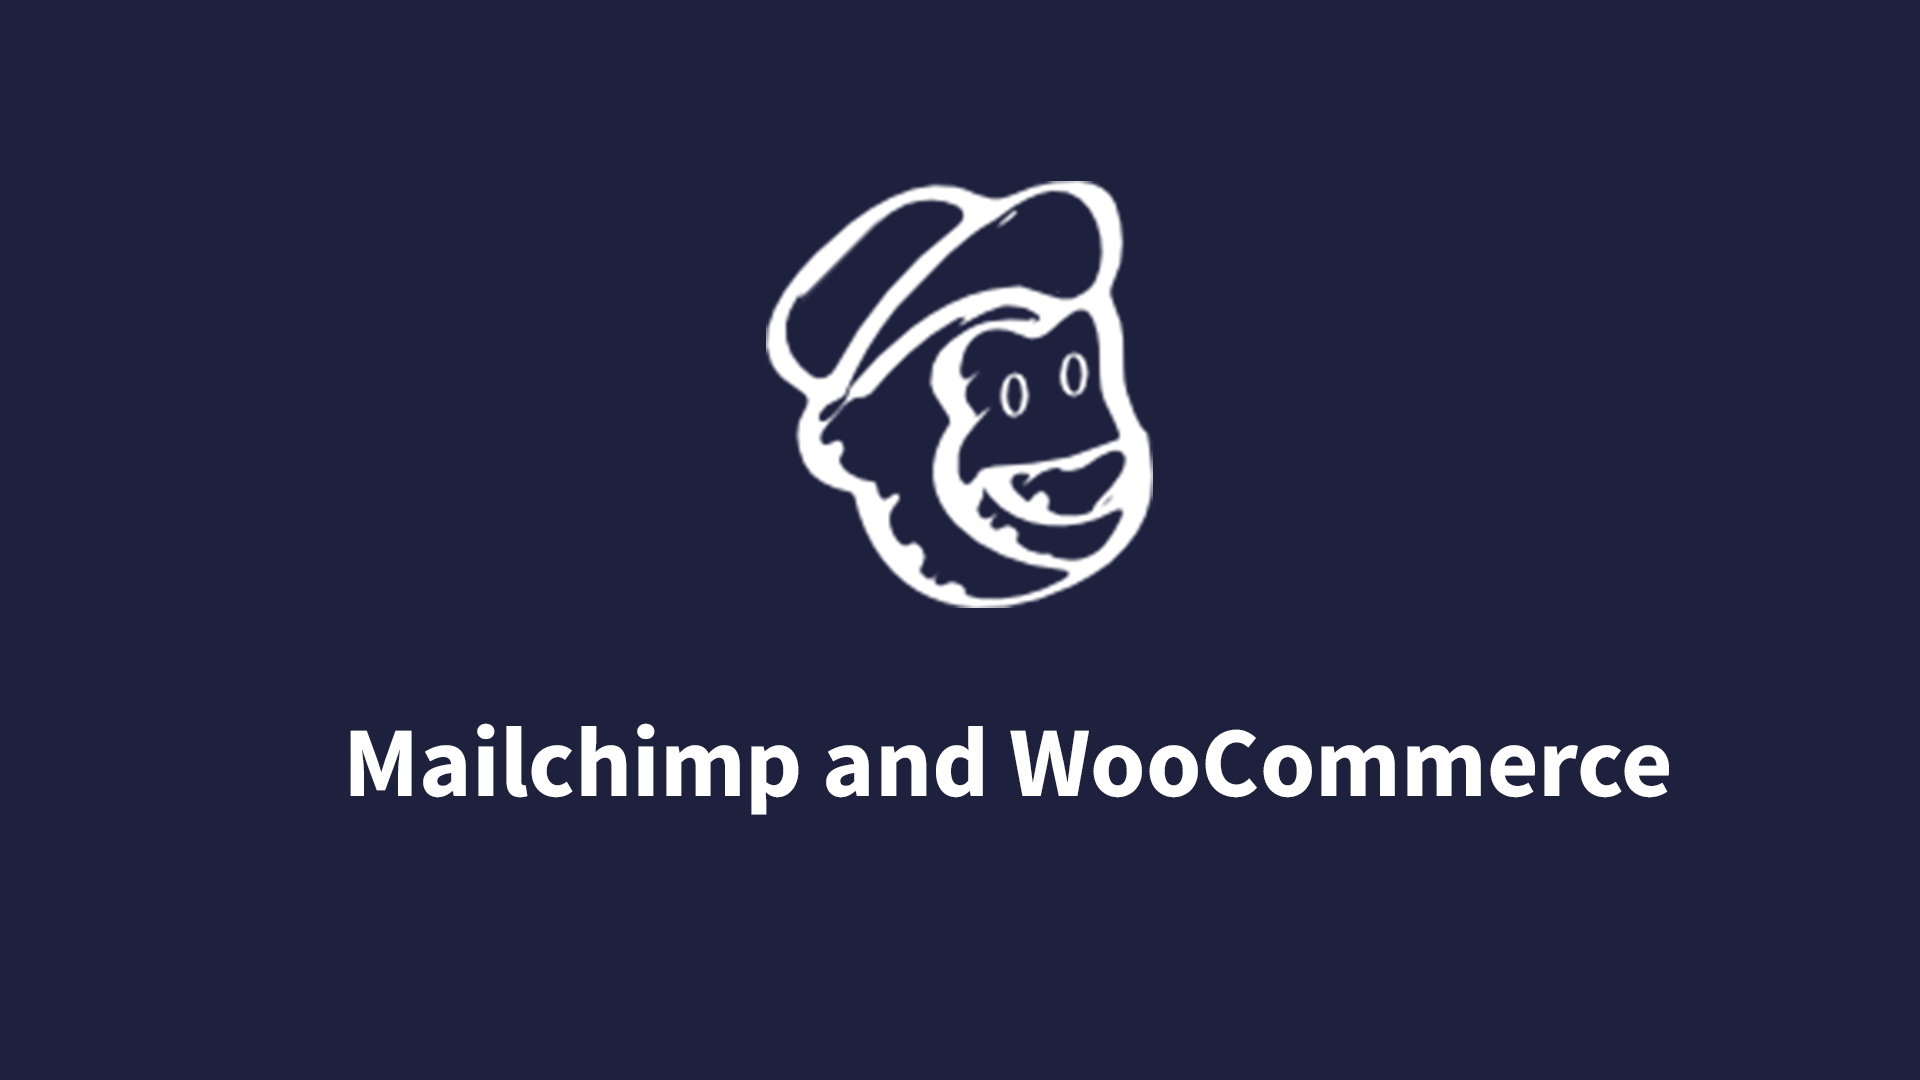 Mailchimp And WooCommerce